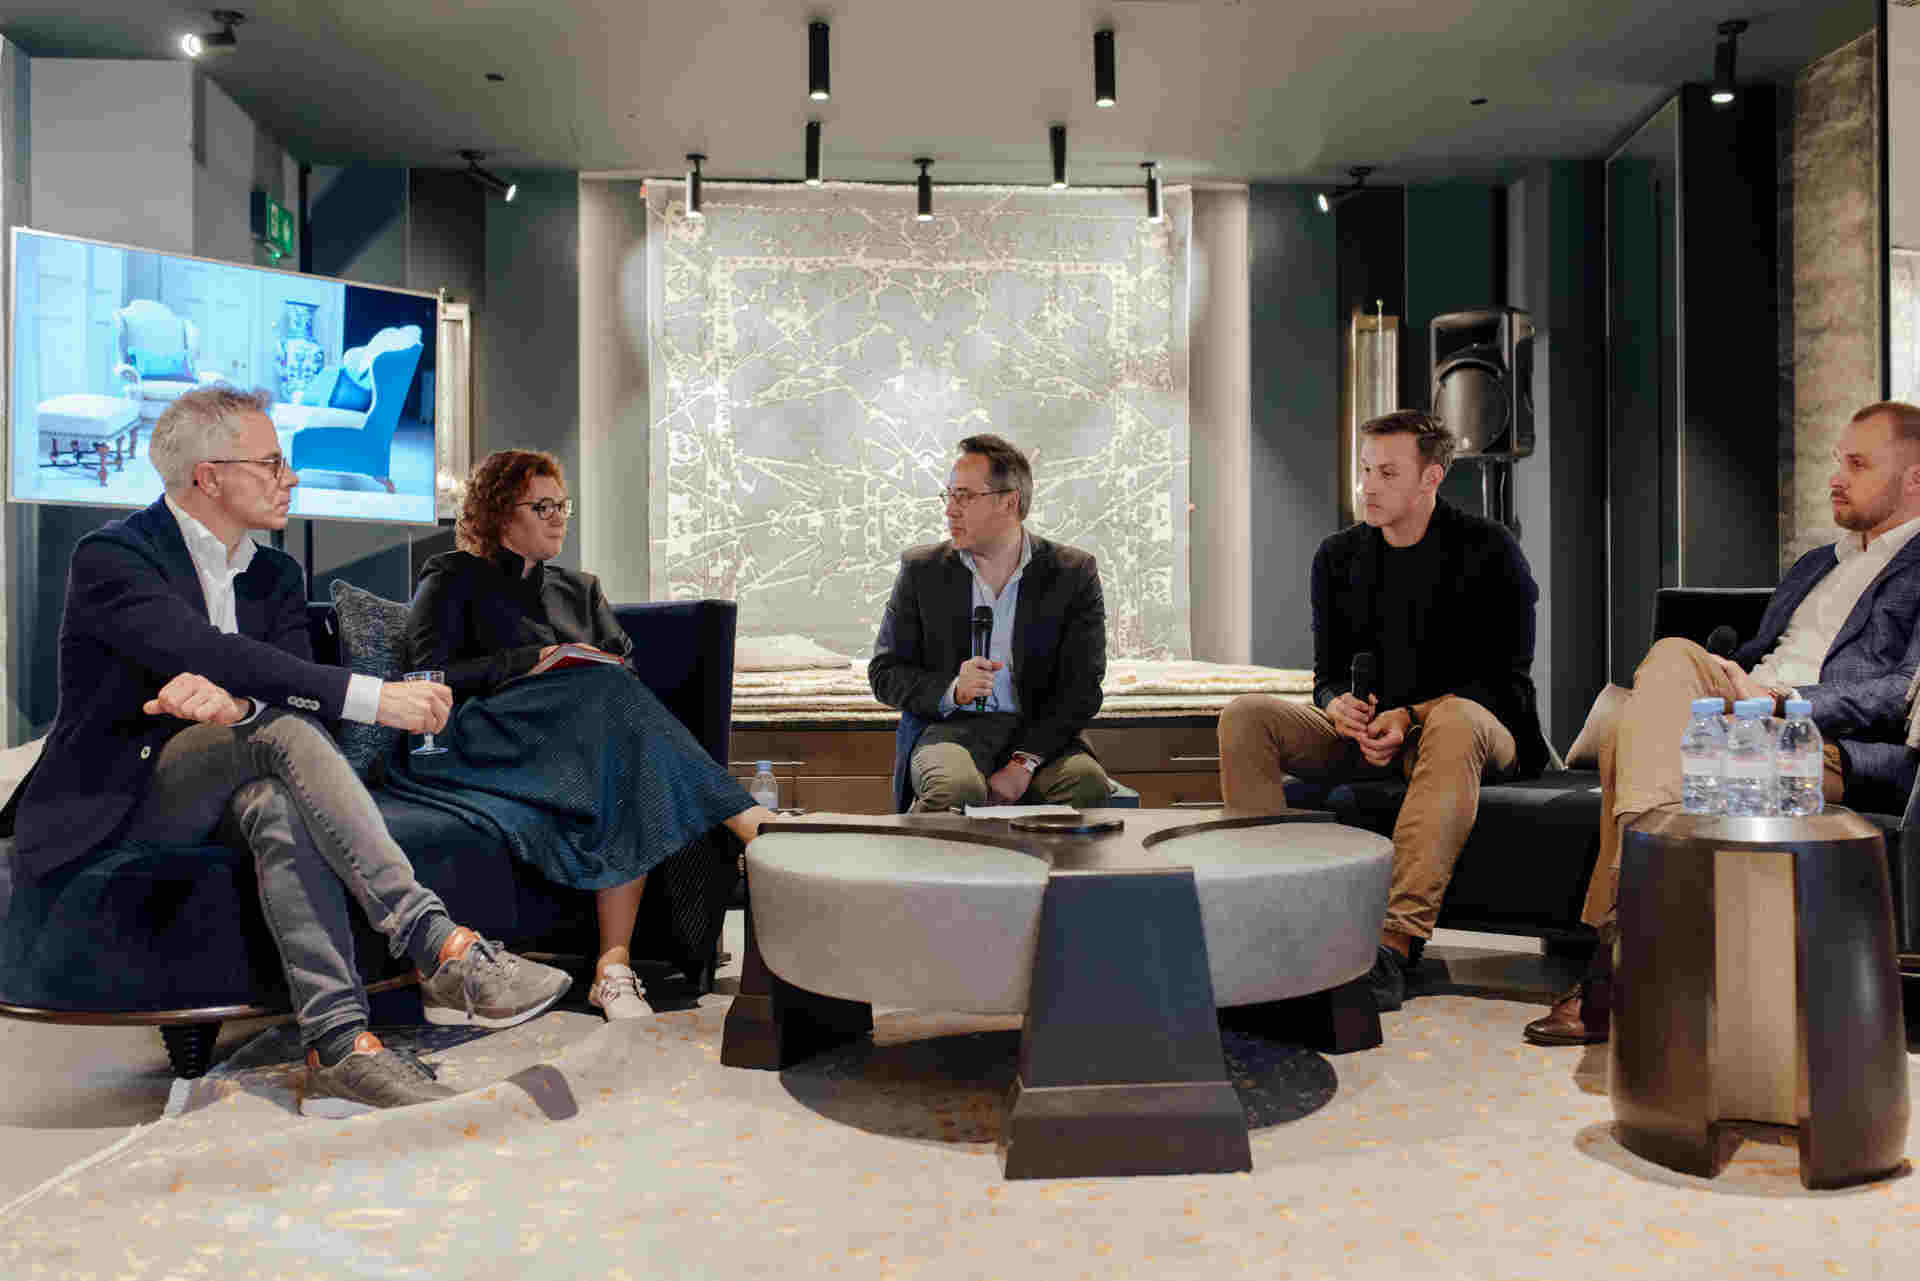 Panel discussion Focus Design London